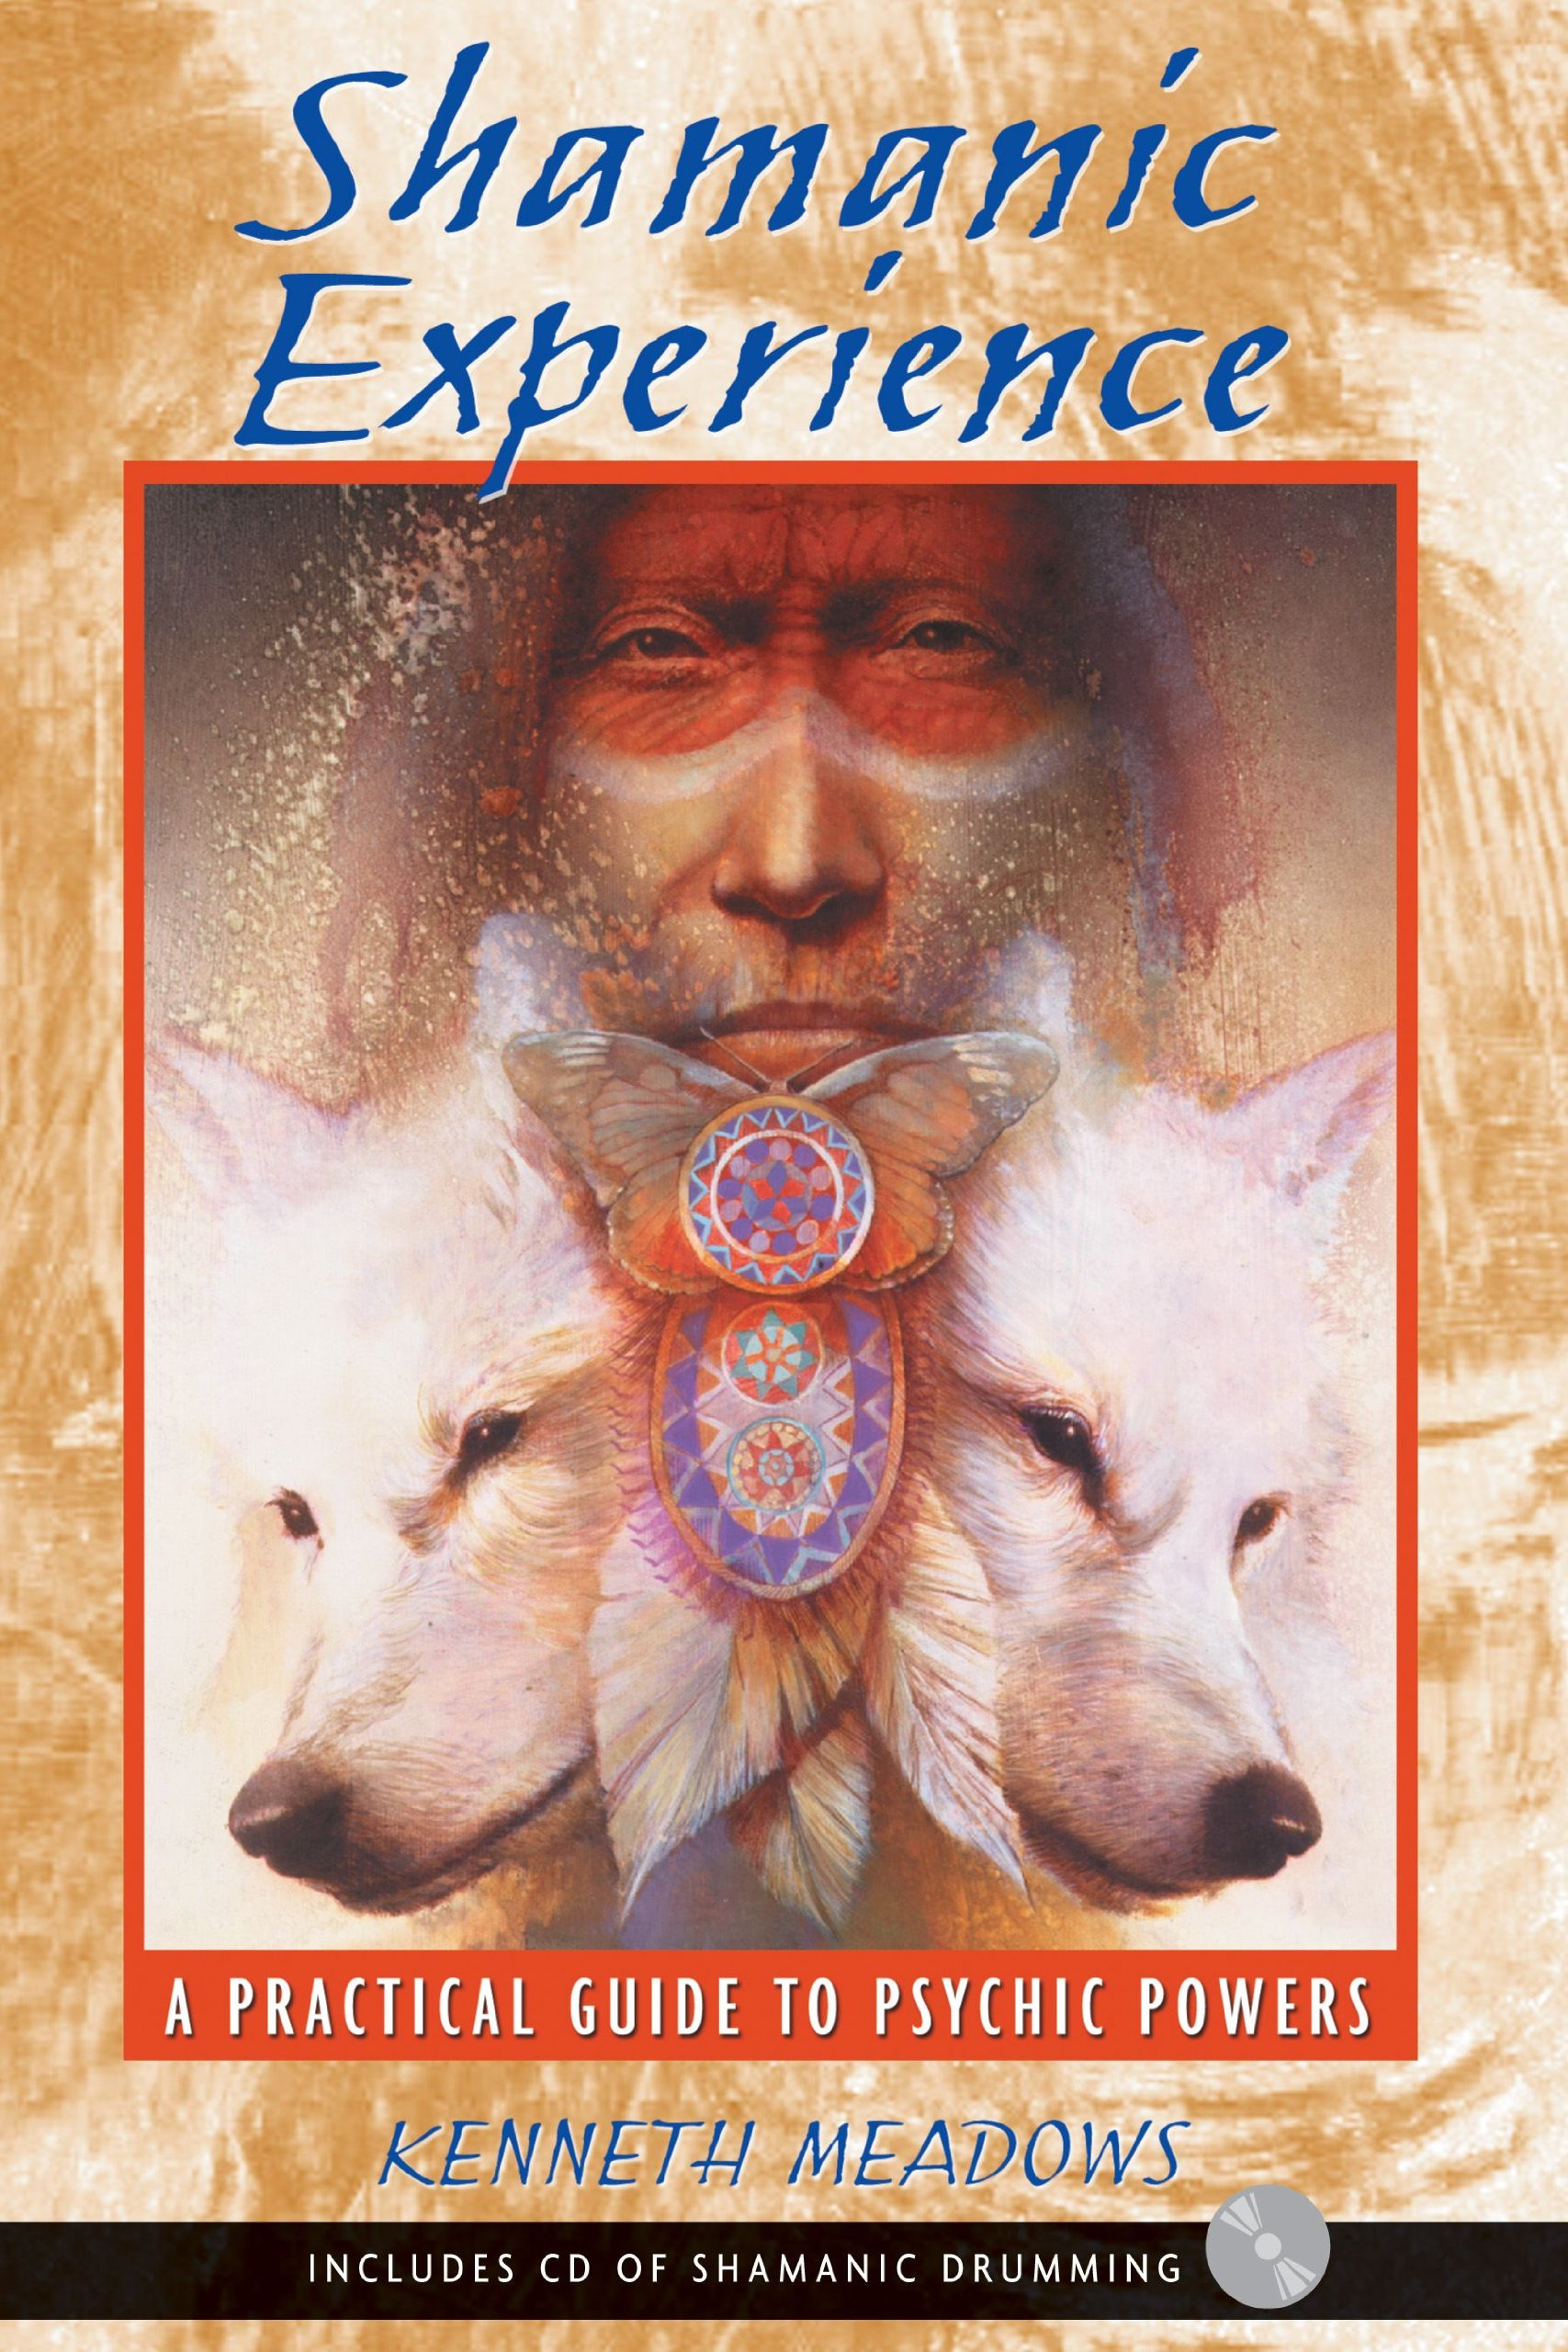 Shamanic Experience: A Practical Guide to Psychic Powers PDF ePub book